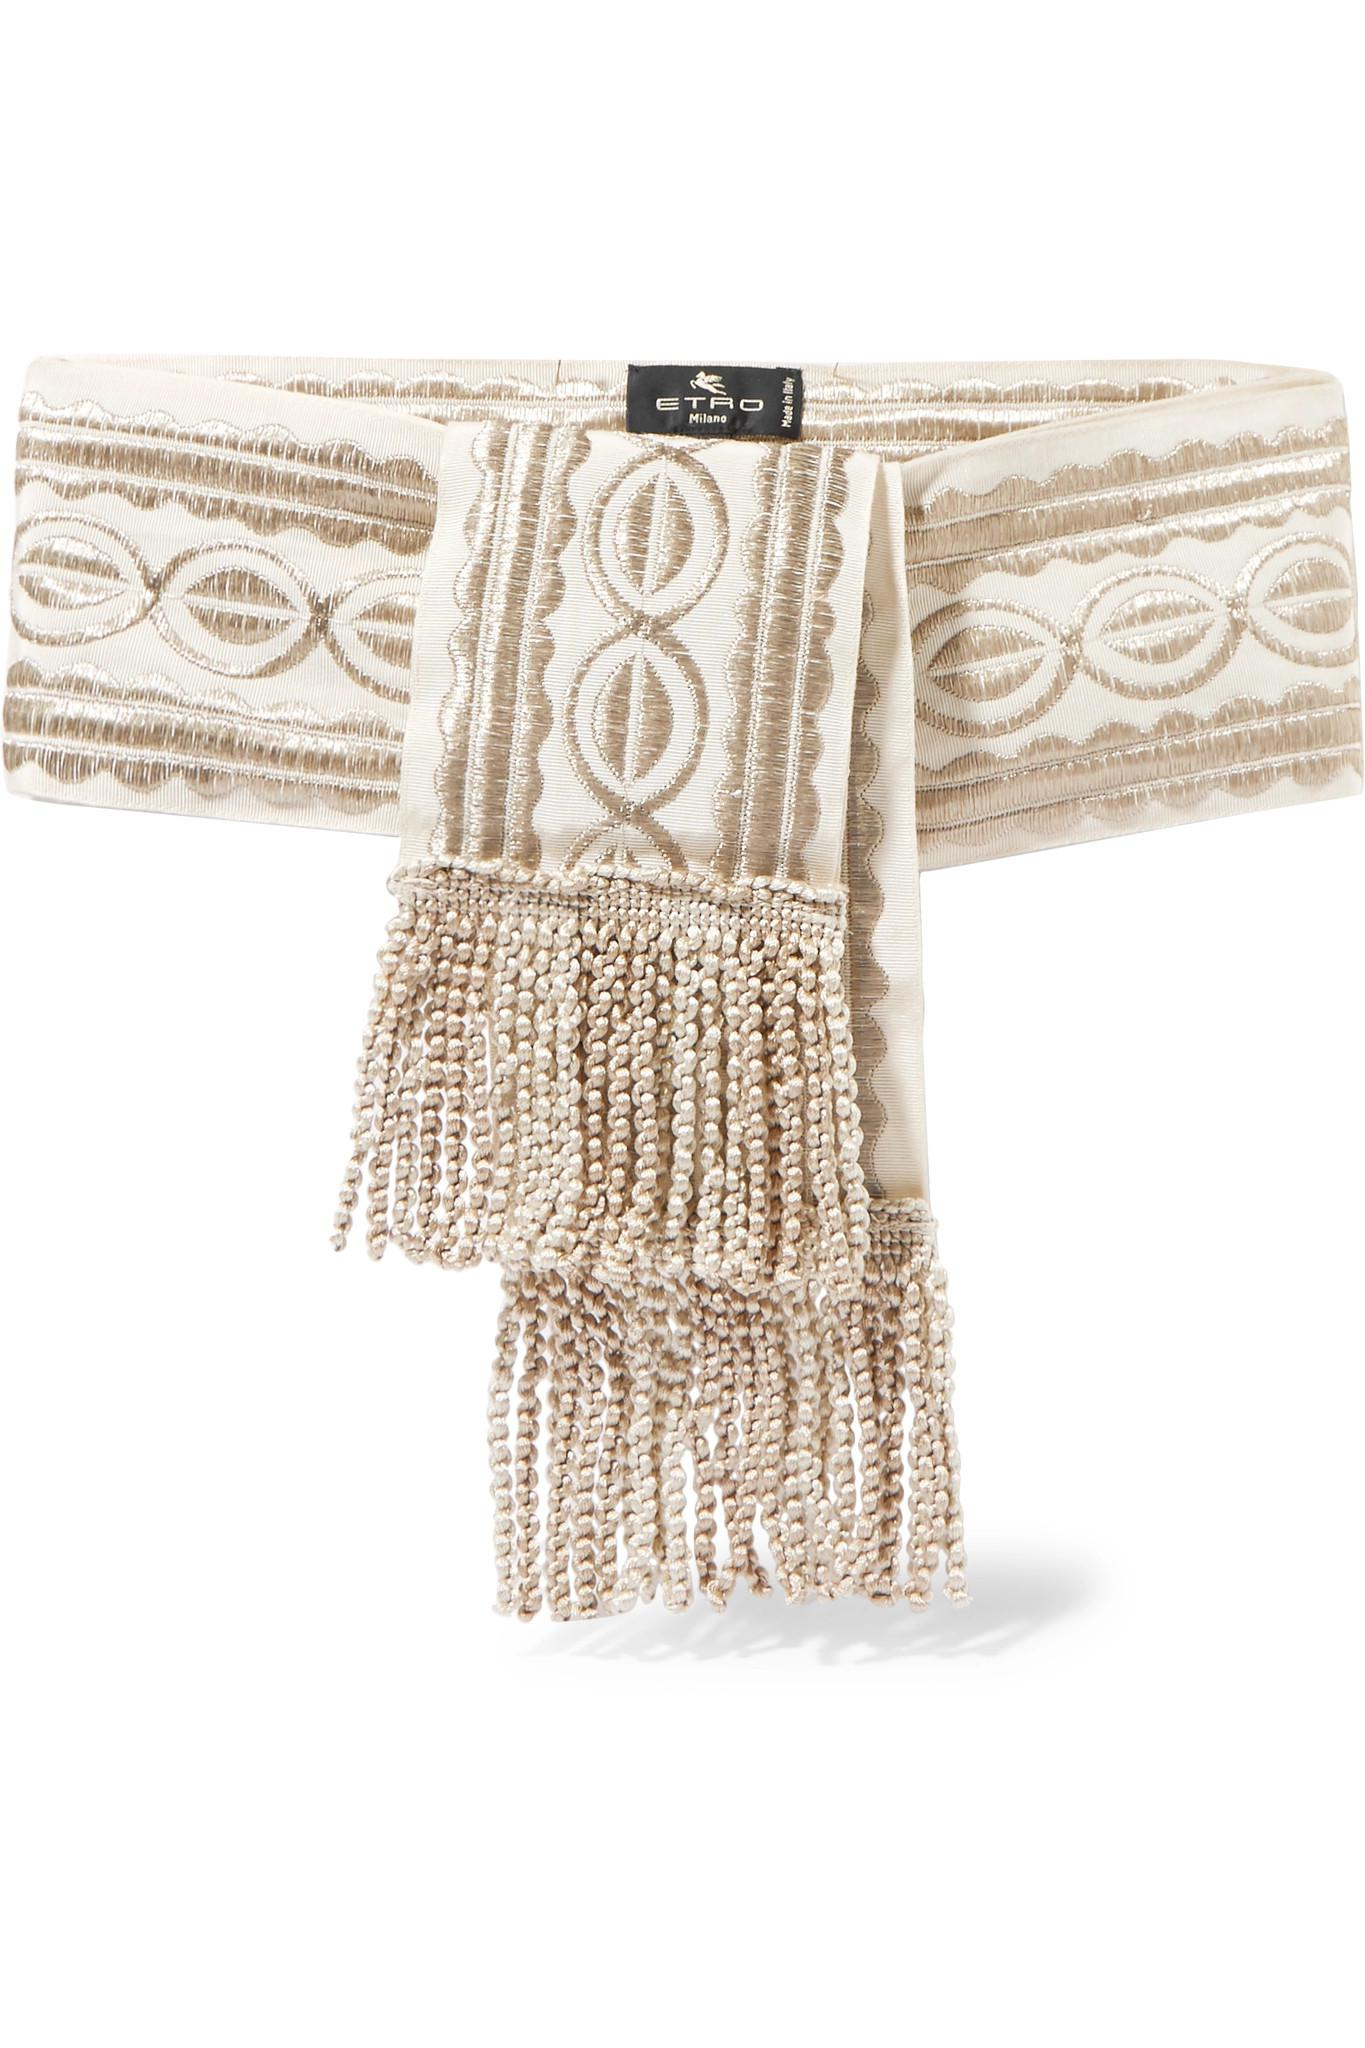 Fringed Metallic Embroidered Grosgrain Belt - Beige Etro GBQzcOes